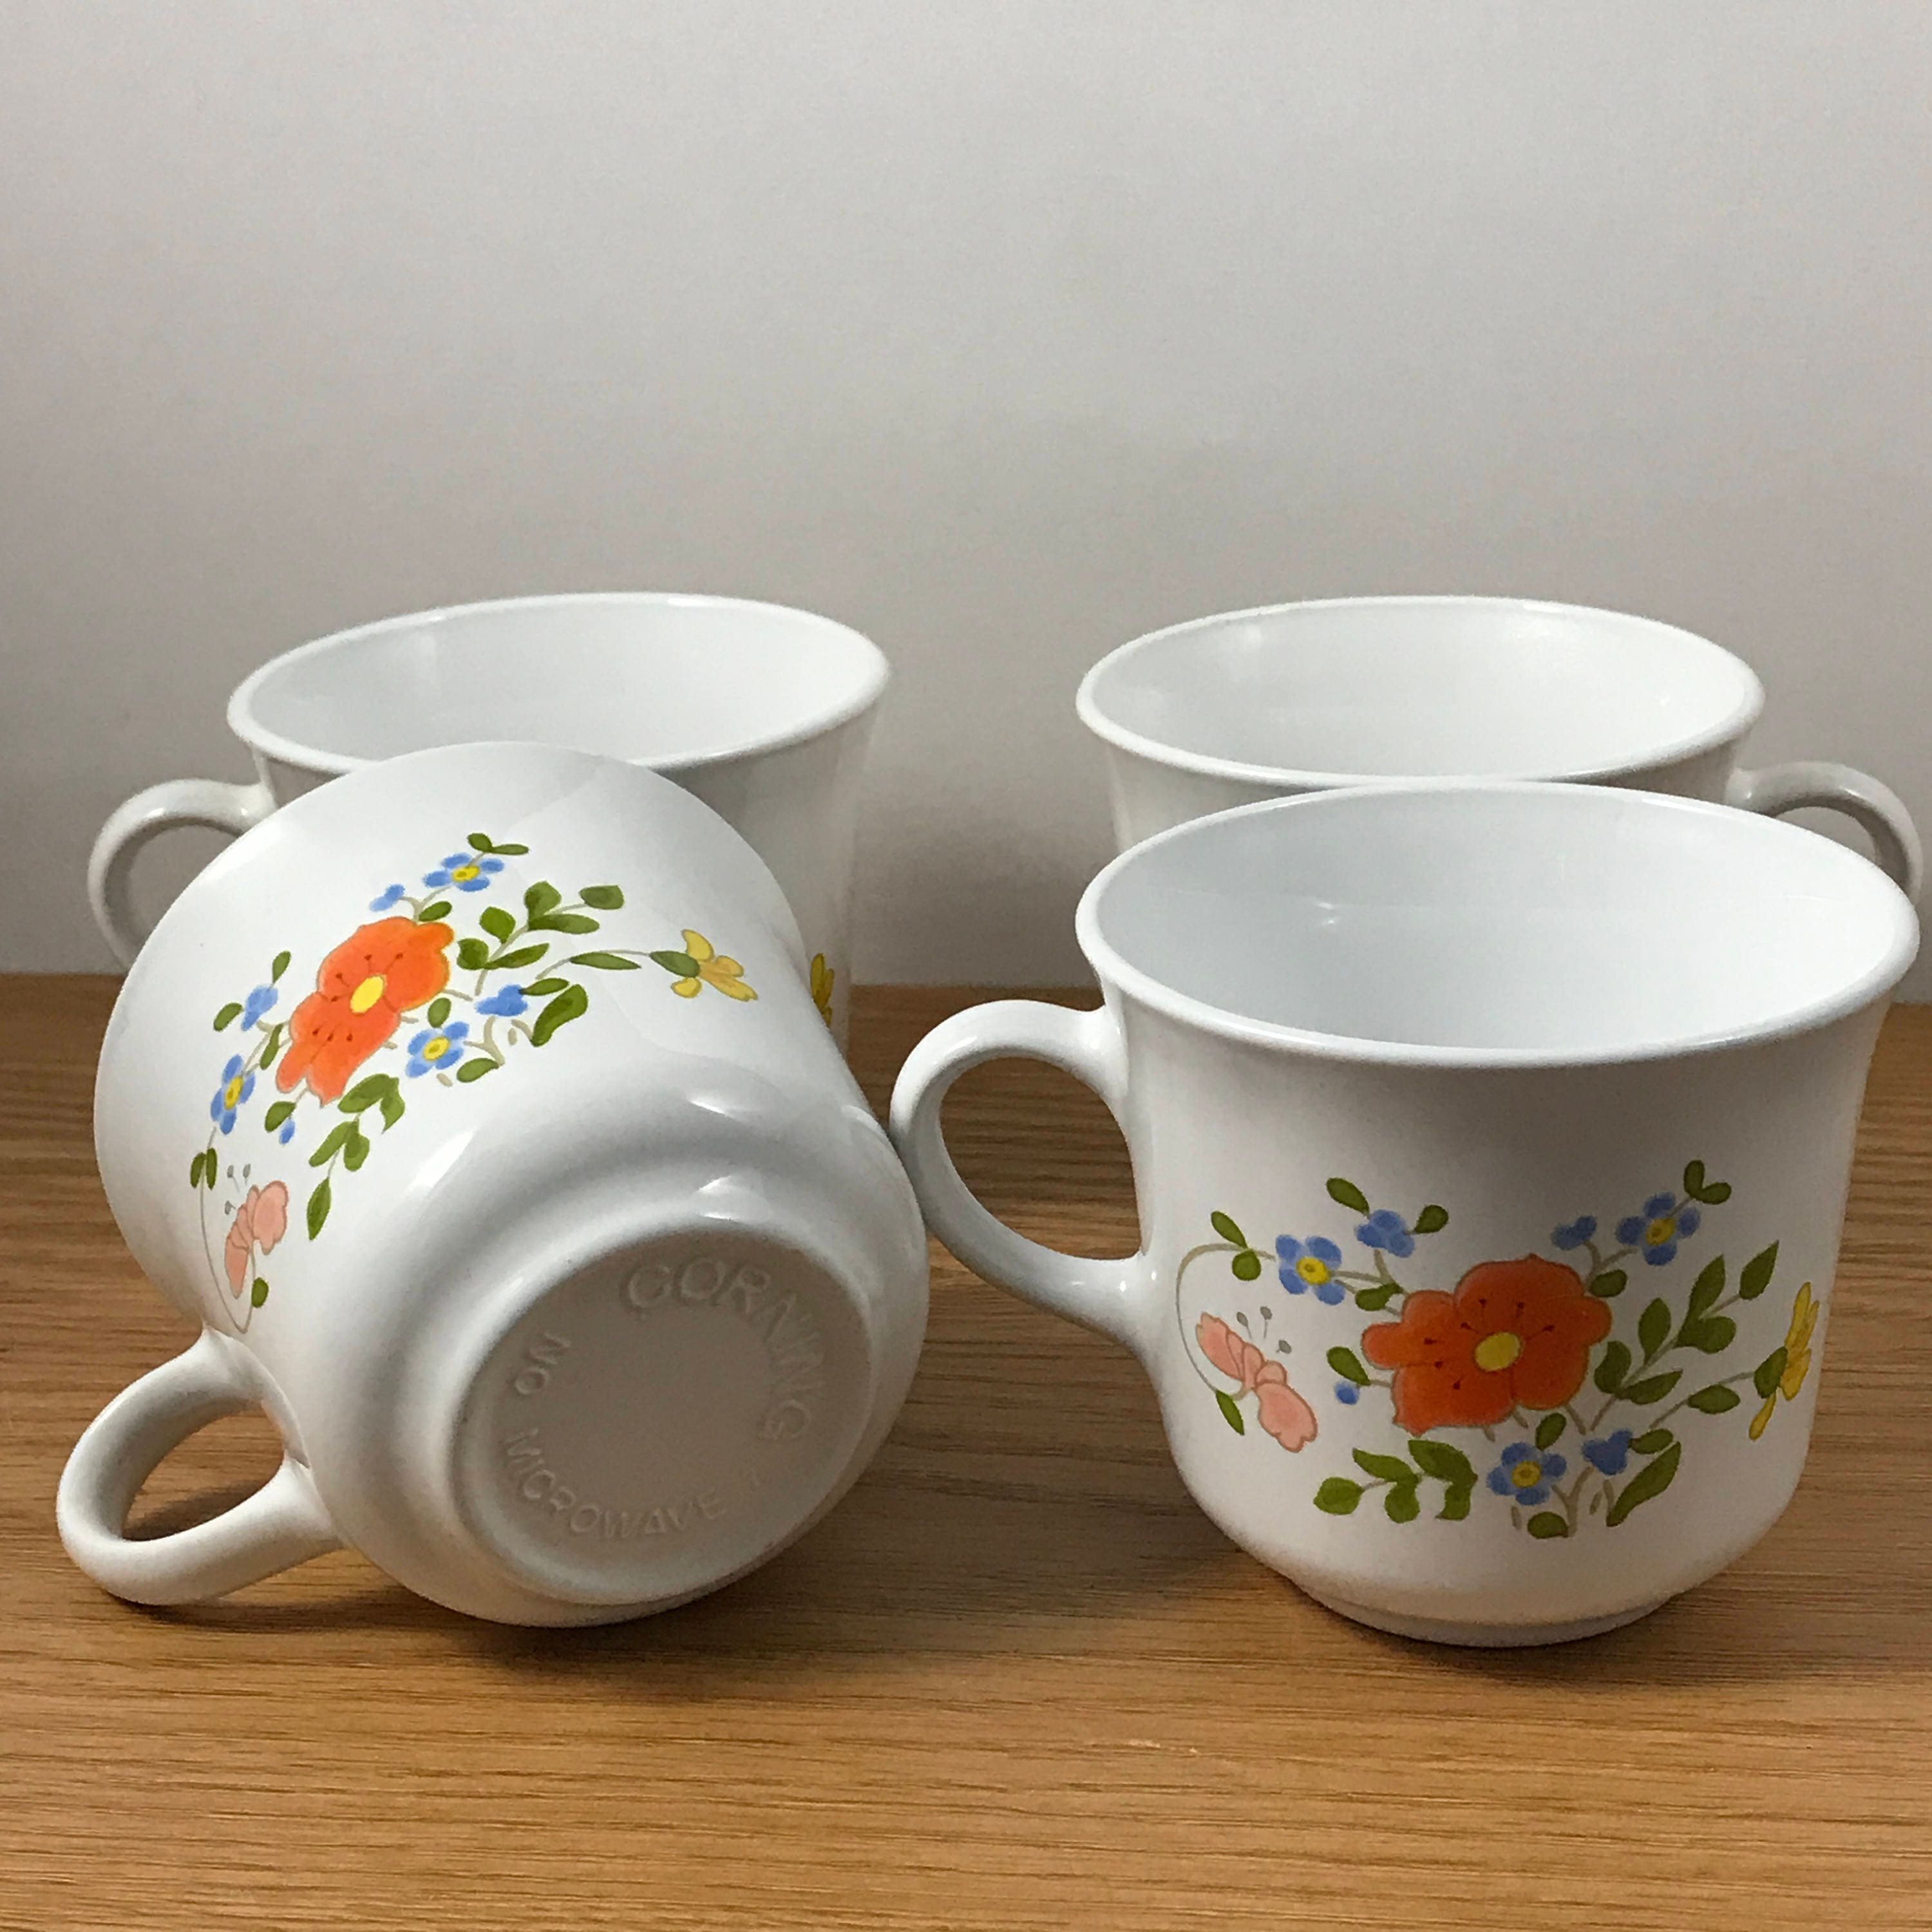 4 Corning Ware Wildflower Cups - Corelle - Pyrex - Four Replacement ...